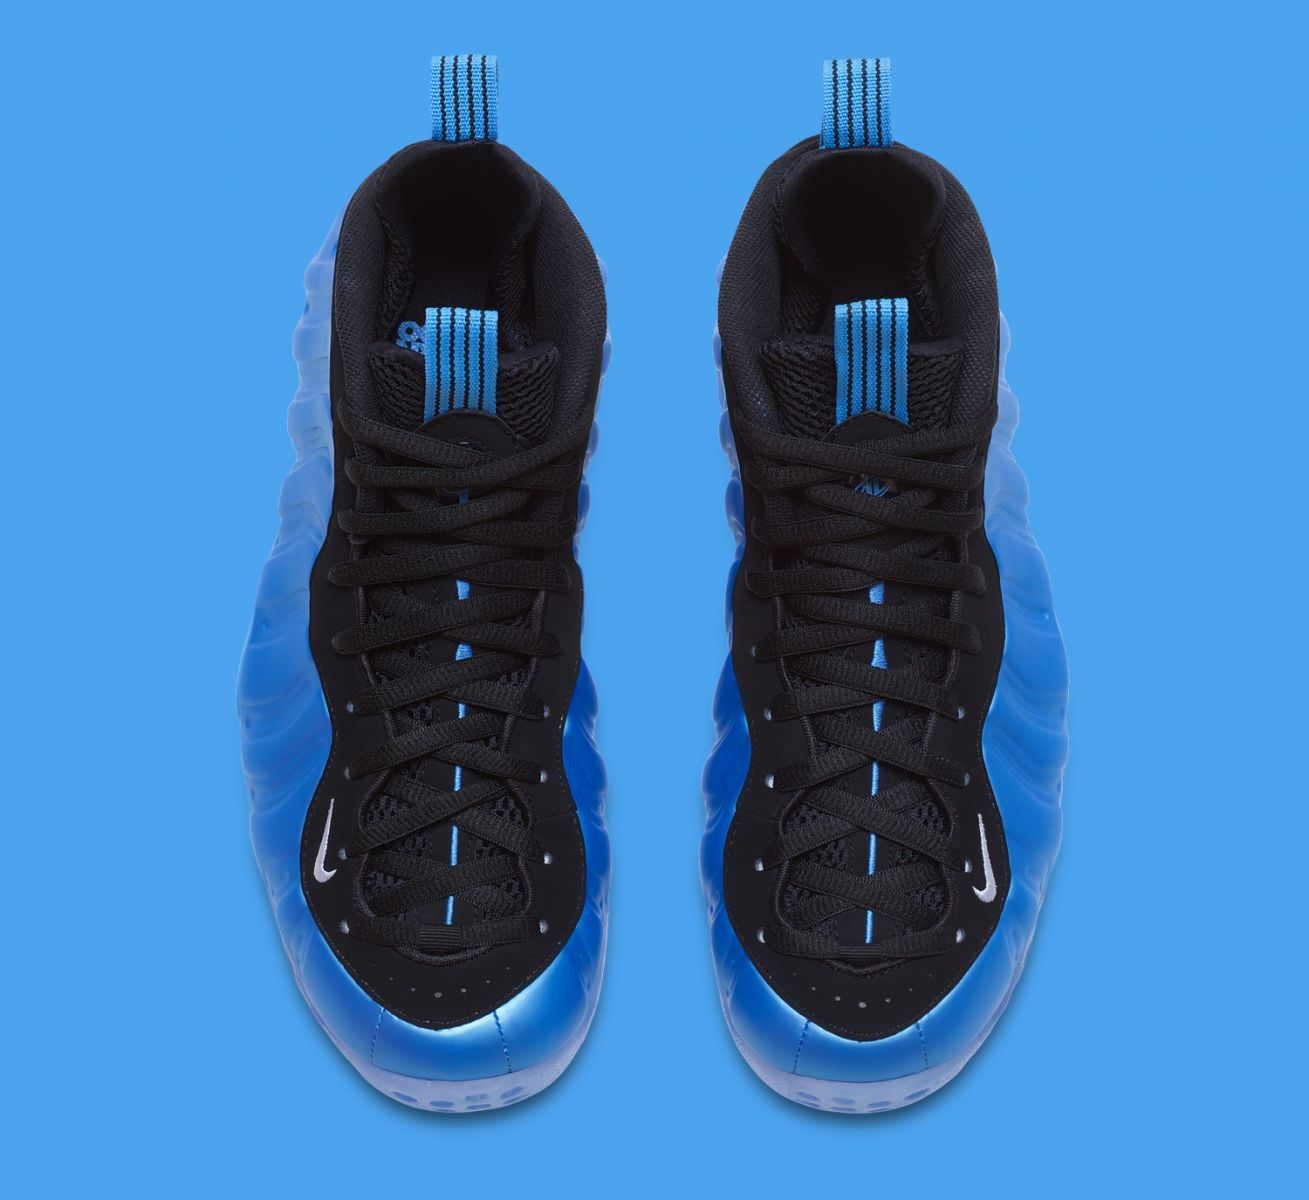 quality design 309b7 c738d Get a Detailed Look at  University Blue  Nike Foamposites